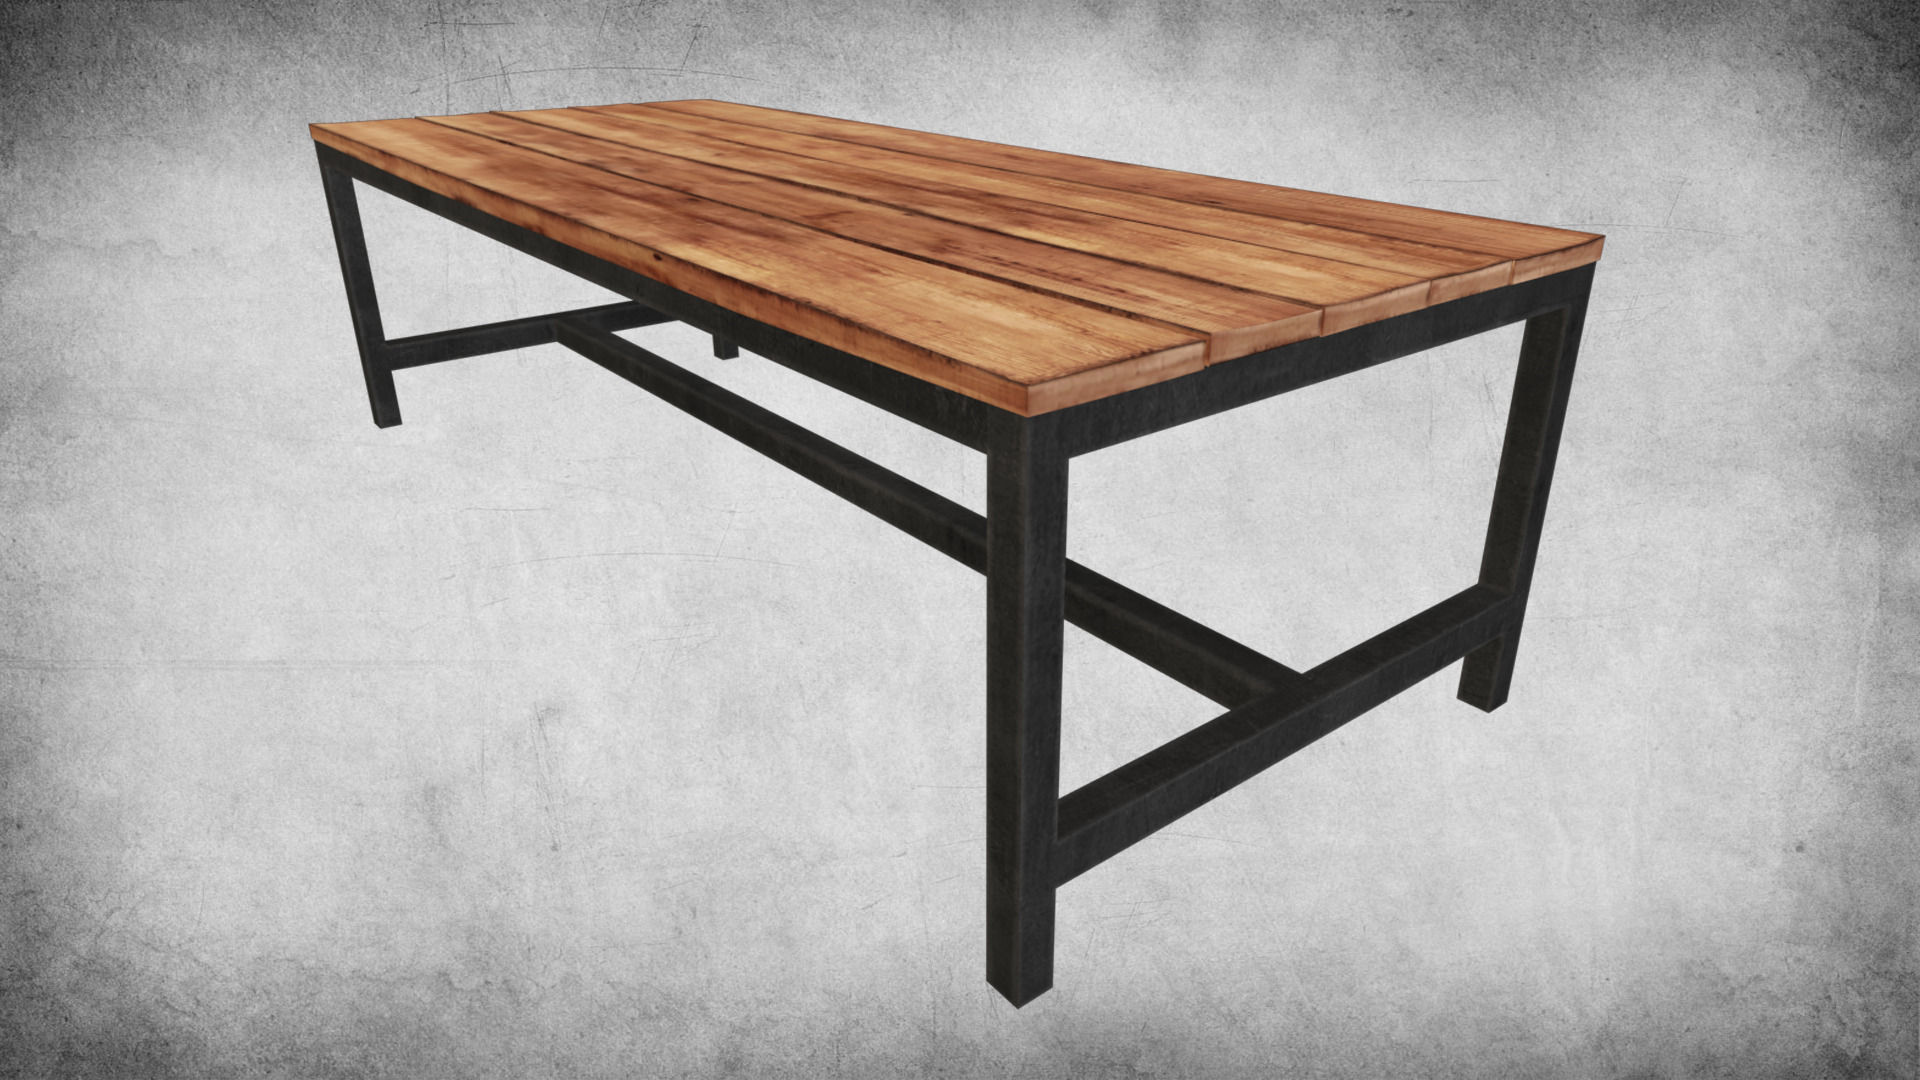 Attrayant Rustic Wood Table 03 3d Model Low Poly Max Obj Mtl 3ds Fbx Dae W3d ...